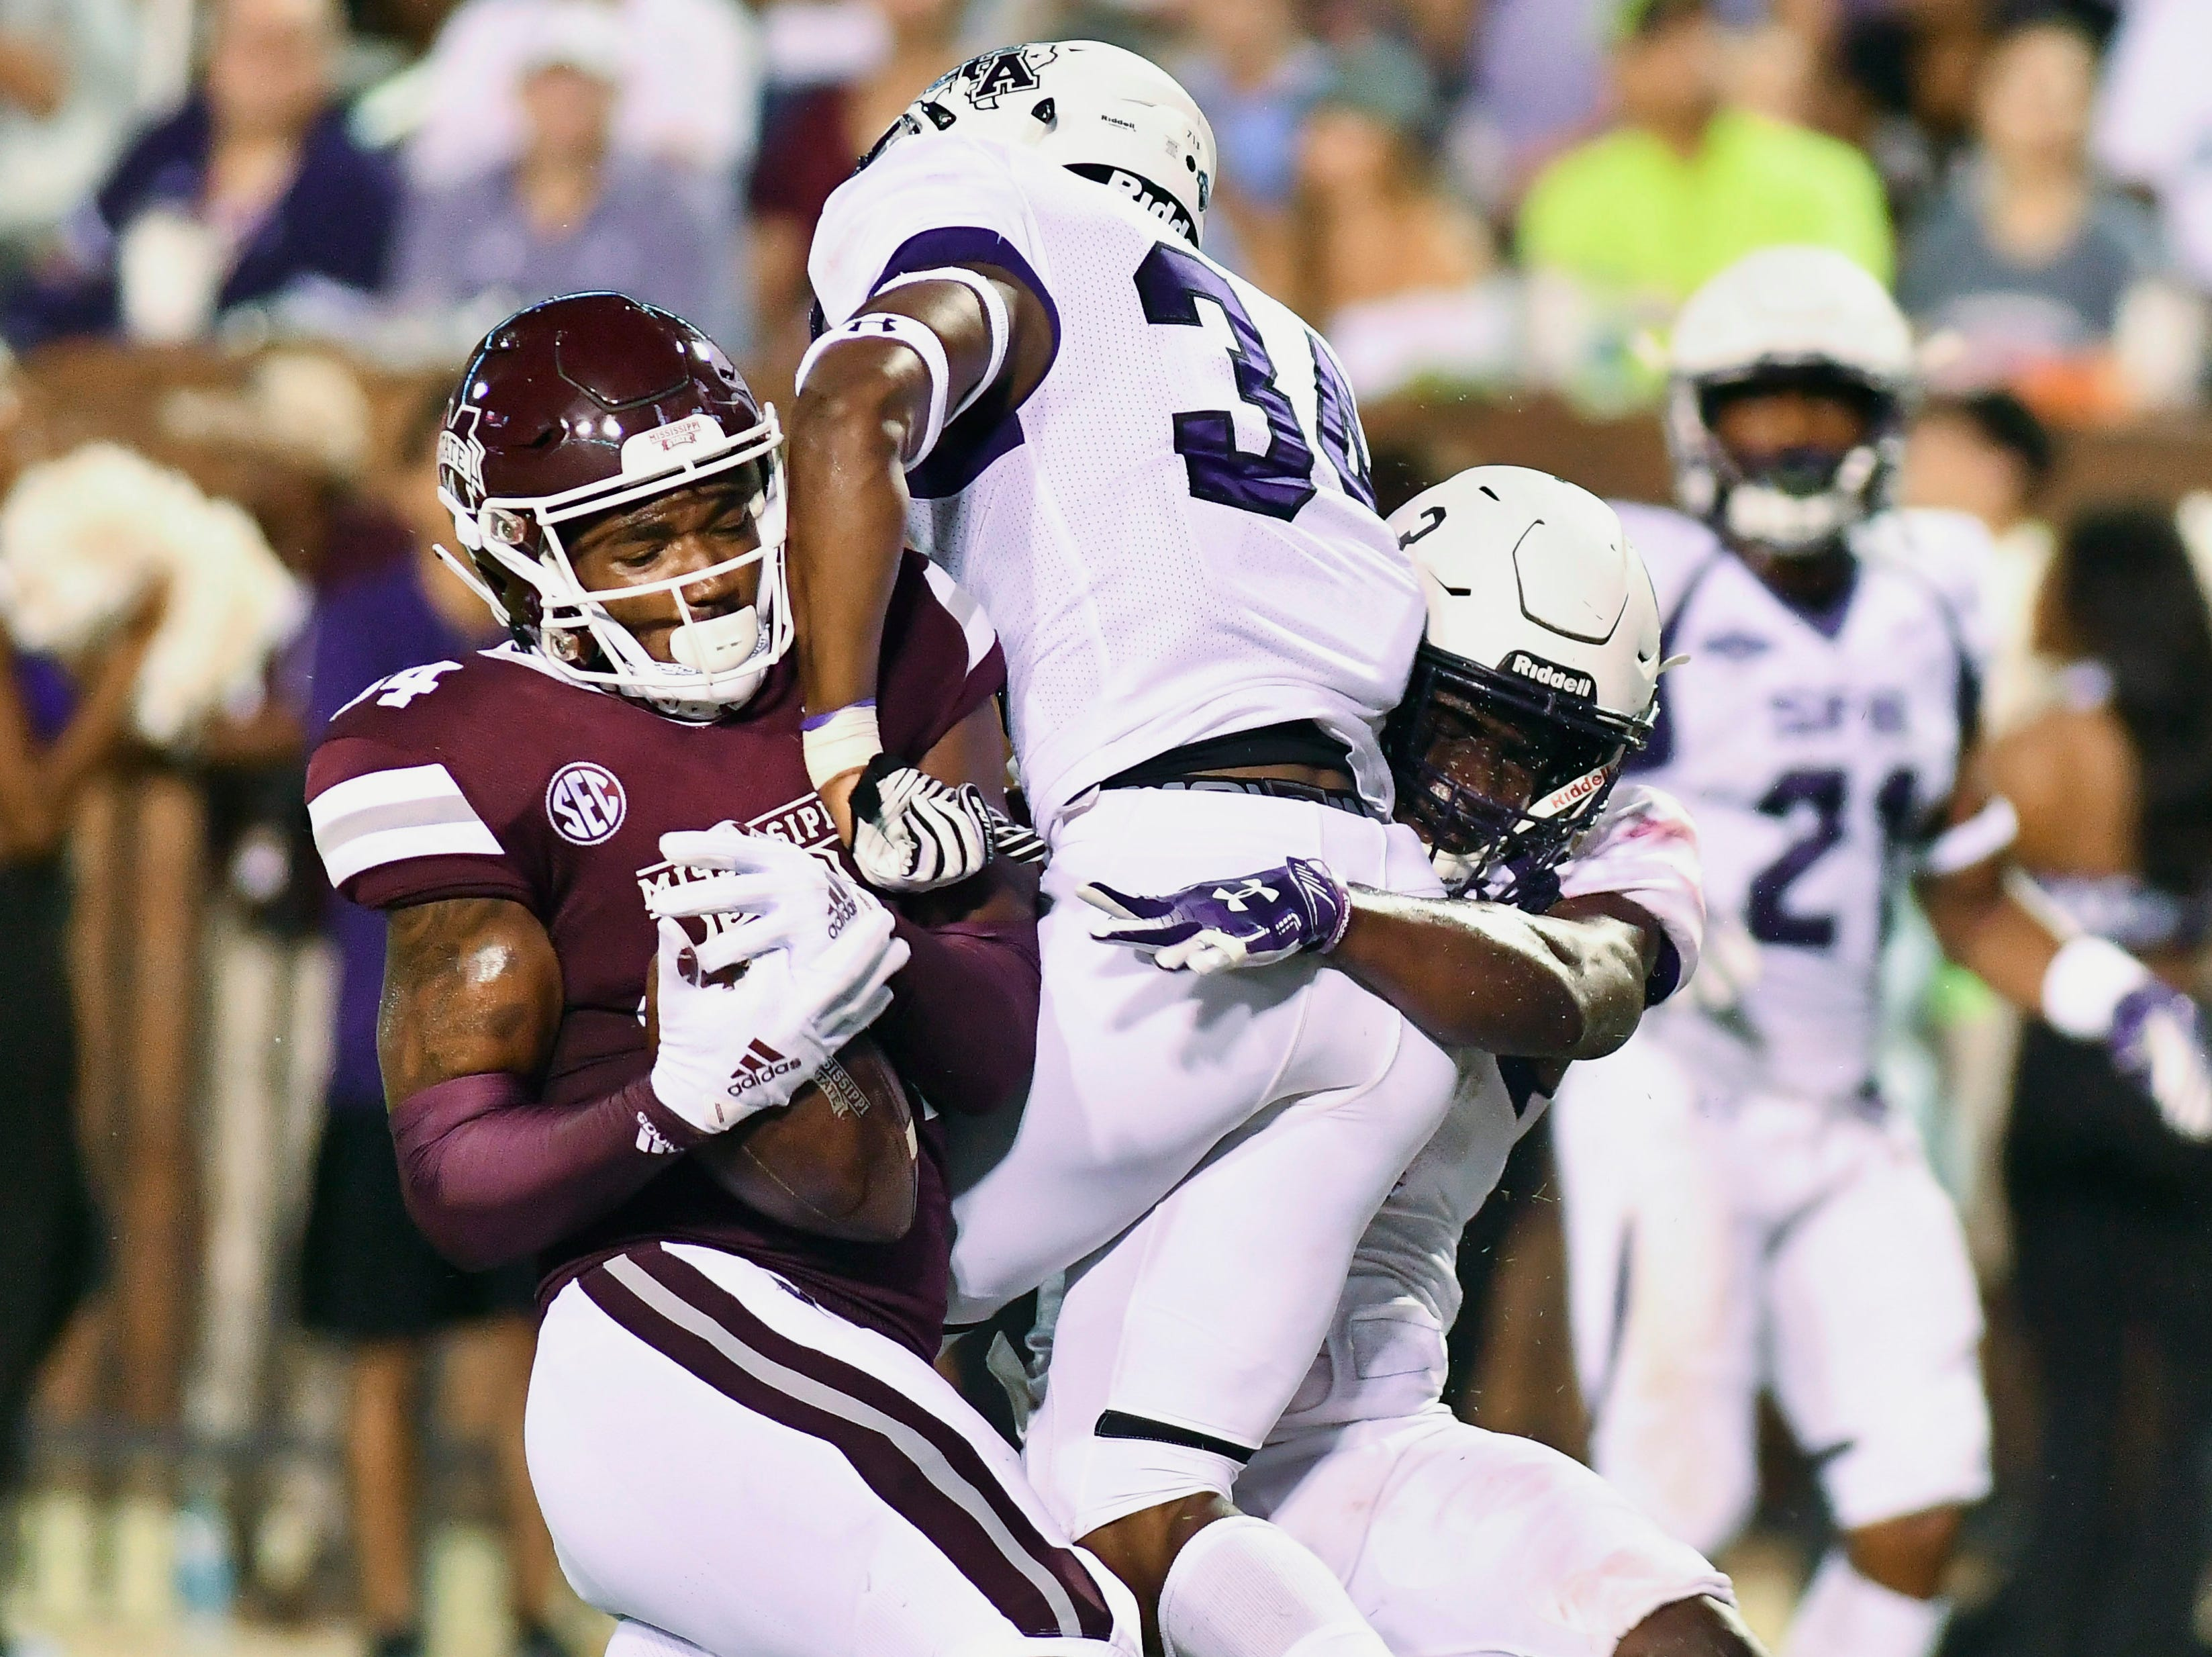 Mississippi State Bulldogs tight end Dontea Jones (84) makes a reception for a touchdown as he is defended by Stephen F. Austin Lumberjacks safety Gavin Roland (34) and safety Lawrence Ghansah (3) during the second quarter at Davis Wade Stadium.